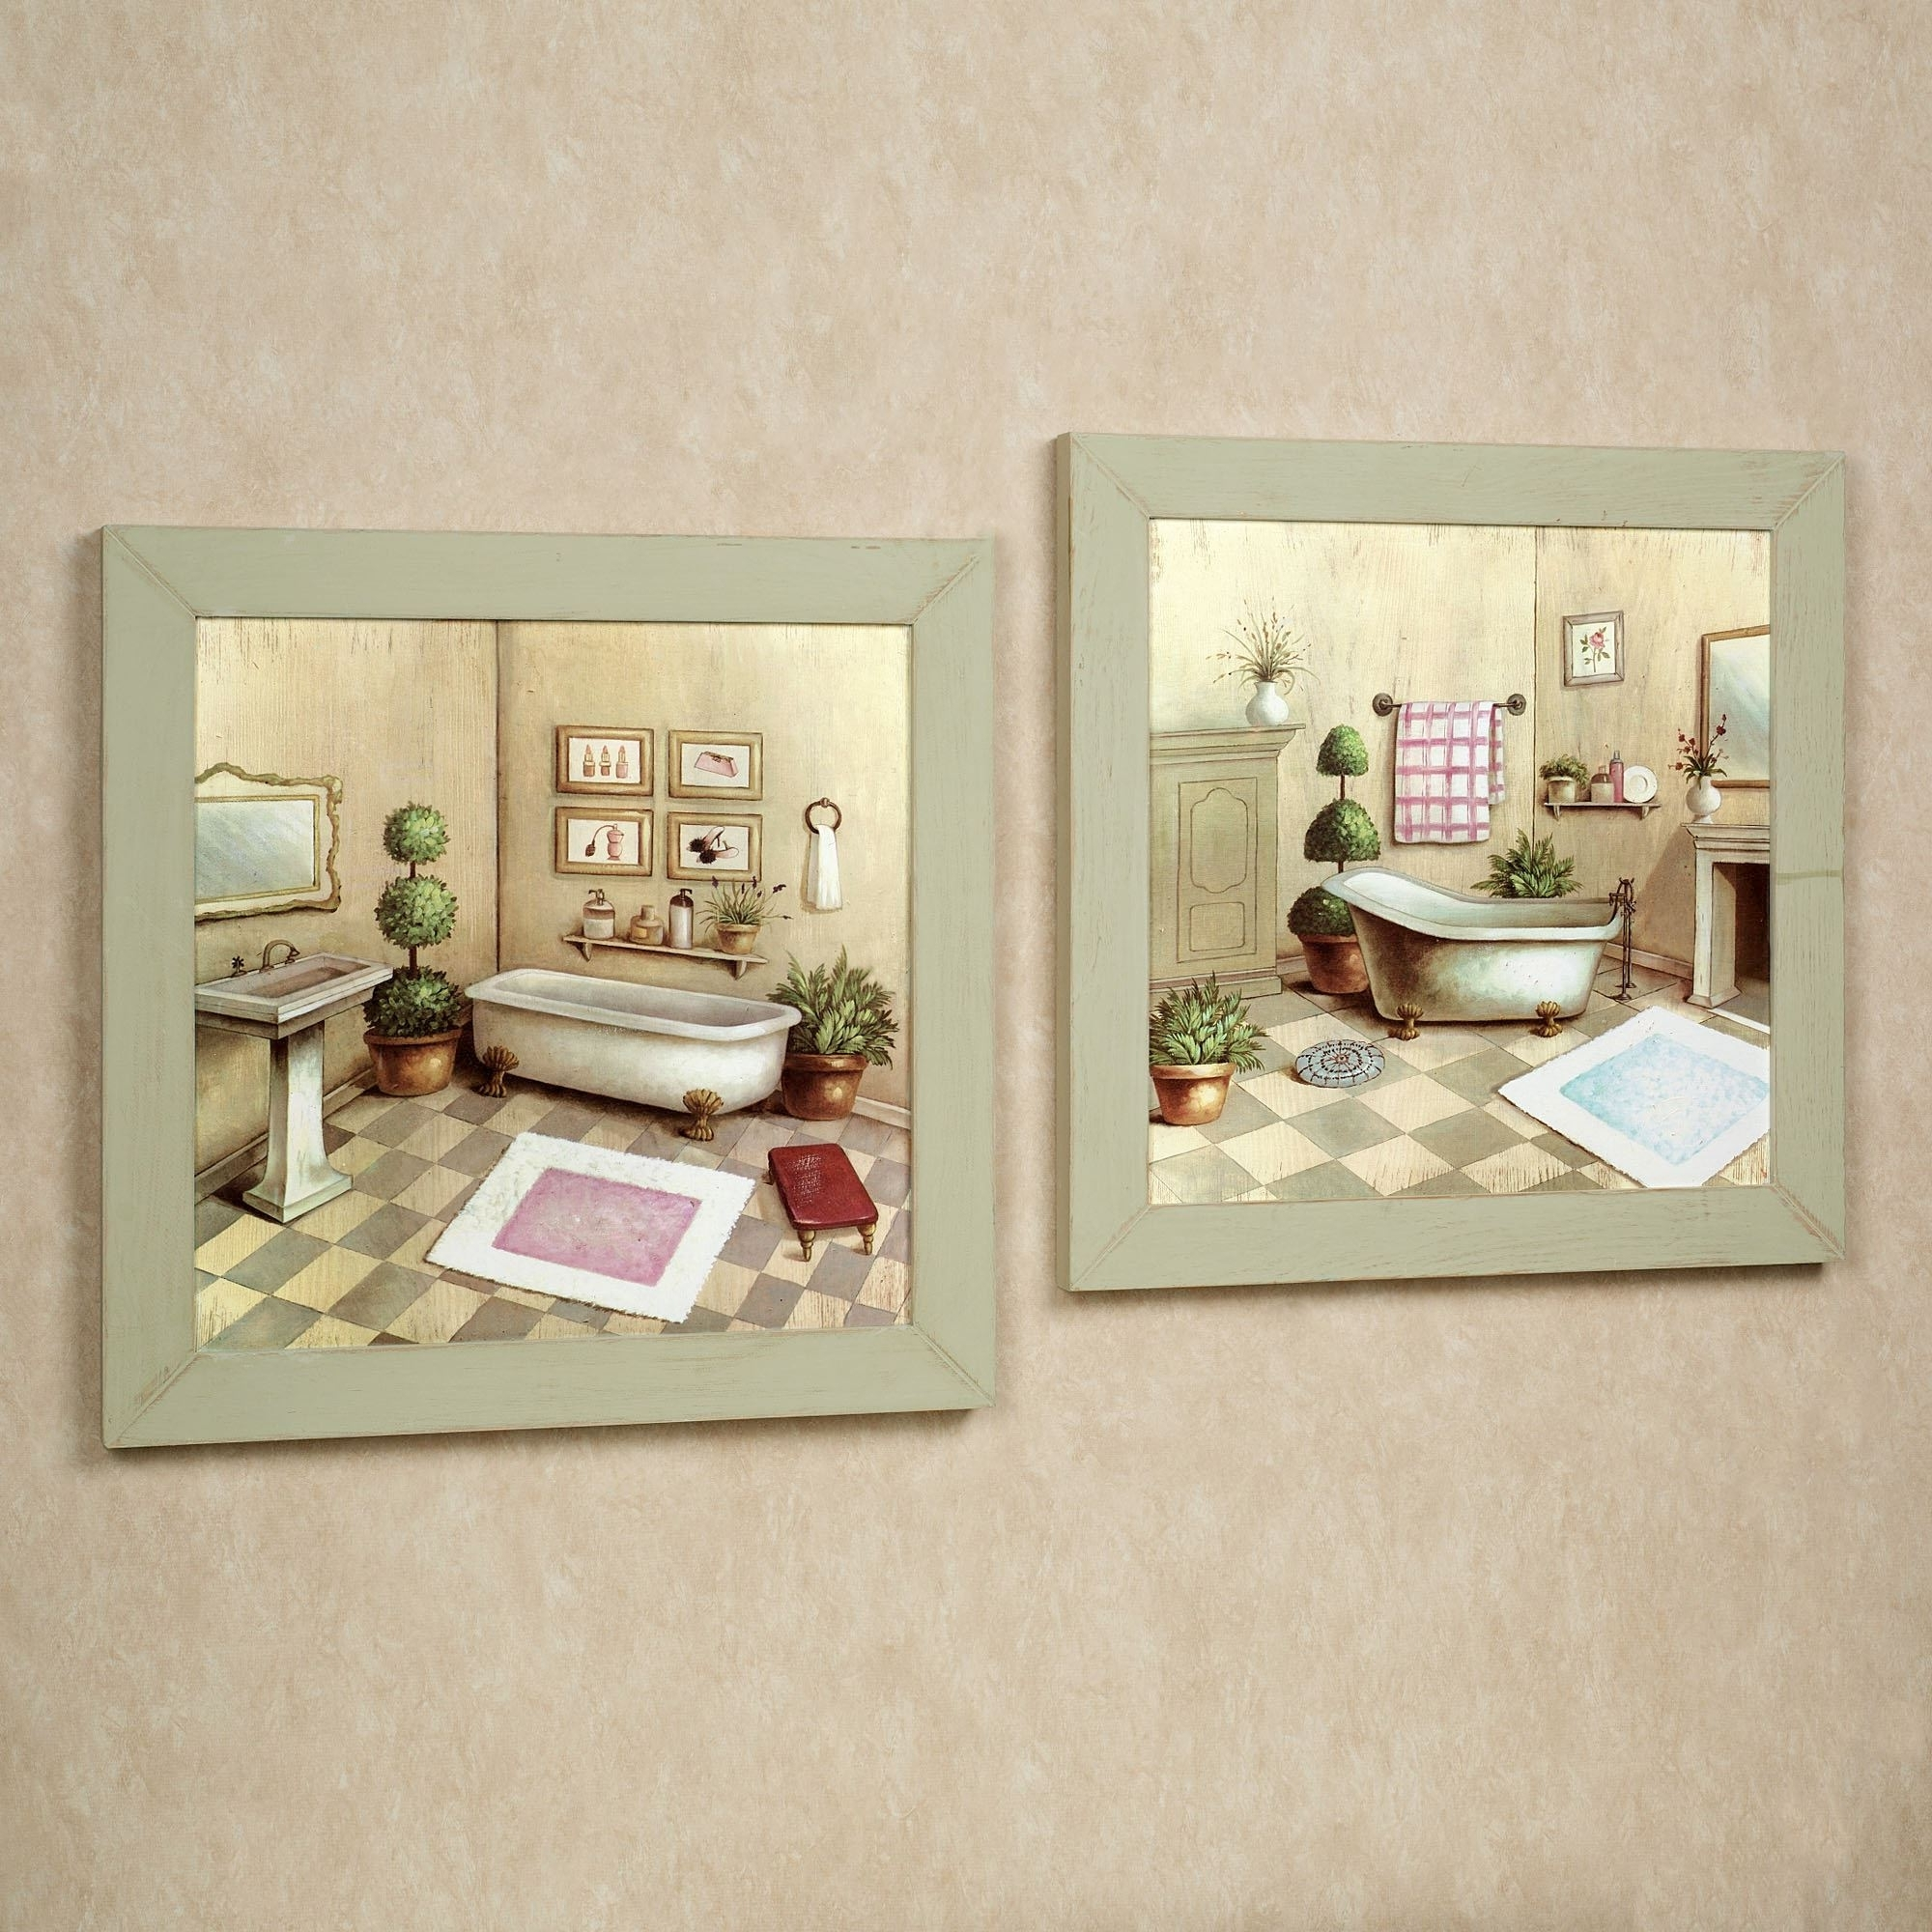 Favorite Framed Art For Bathroom, Framed Wall Art Decor For Bathroom Hobby Pertaining To Framed Art Prints For Bathroom (View 6 of 15)